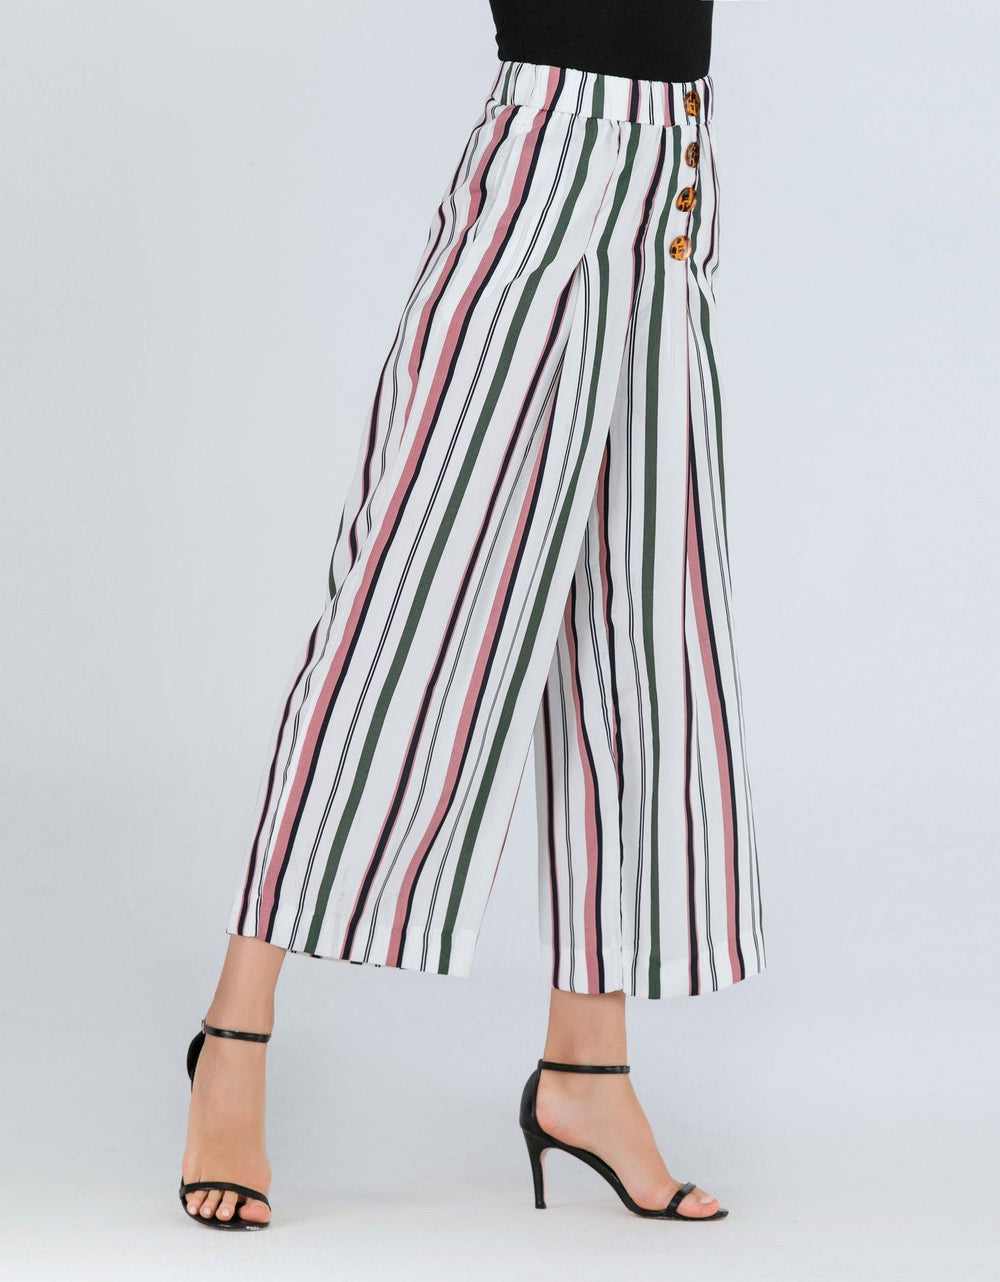 Line Stripes Trousers - Brandsea UK